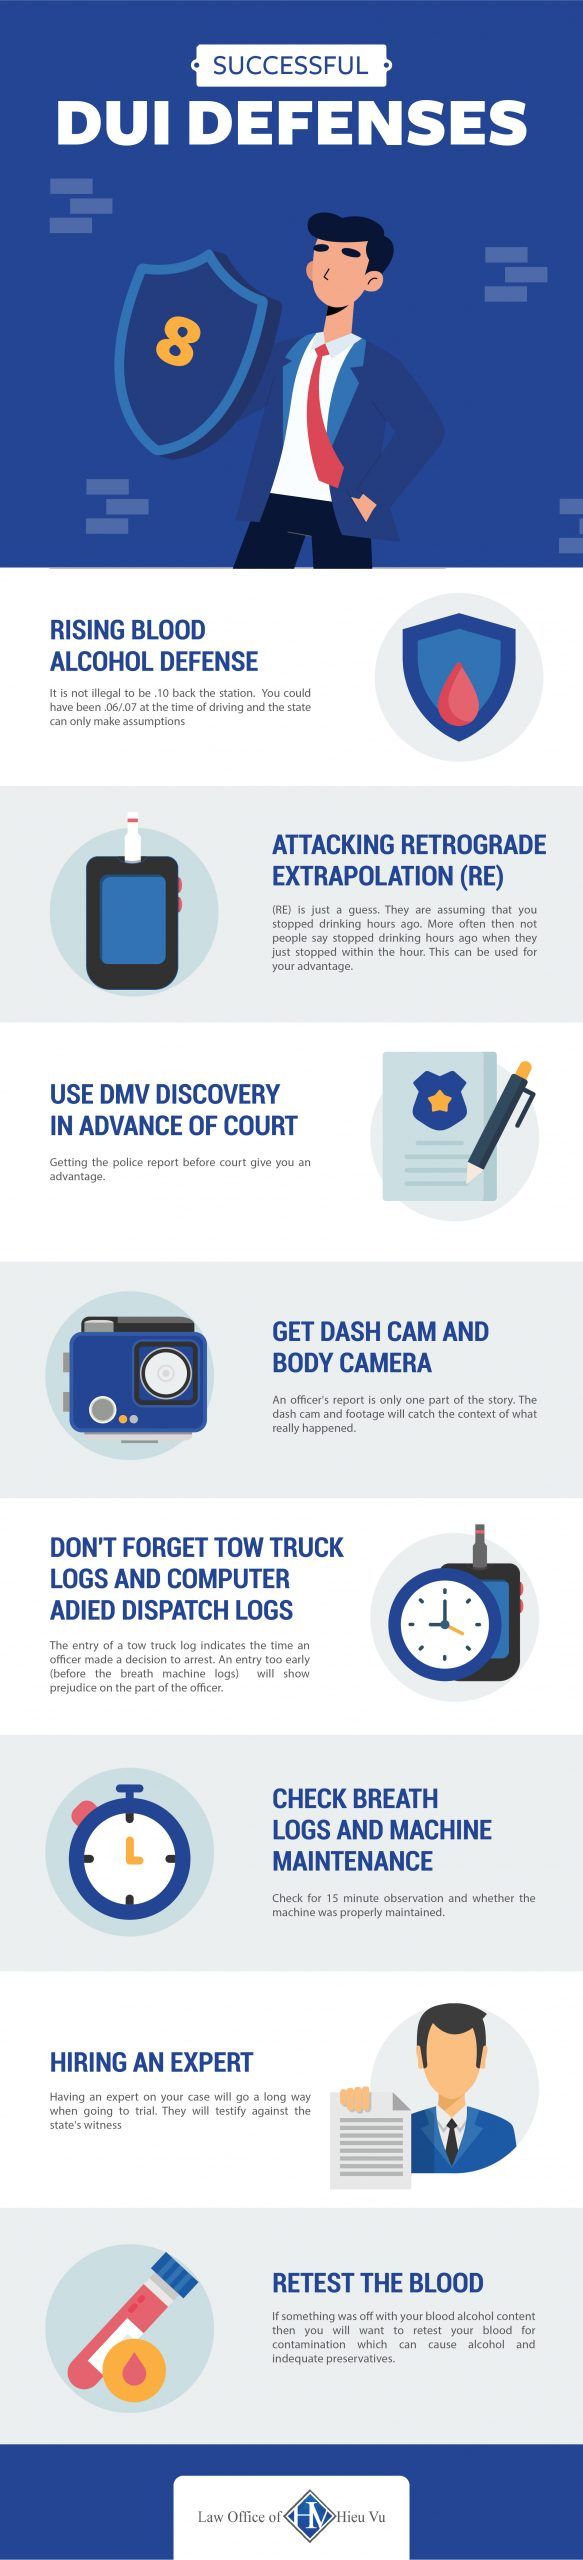 Infographic showing 8 common DUI Defenses